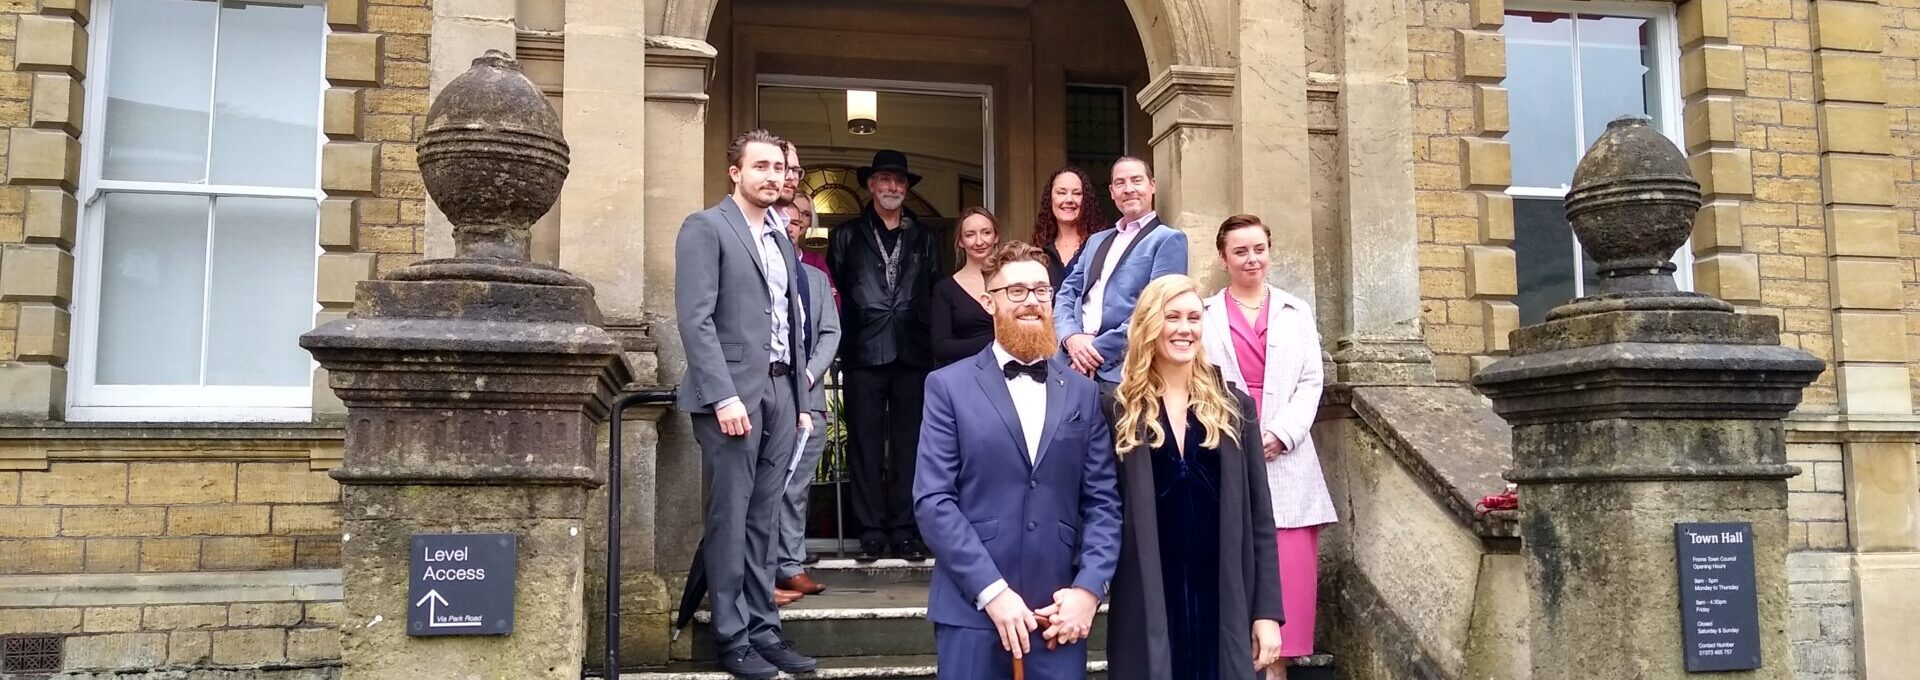 Wedding party on the steps of Frome Town Hall